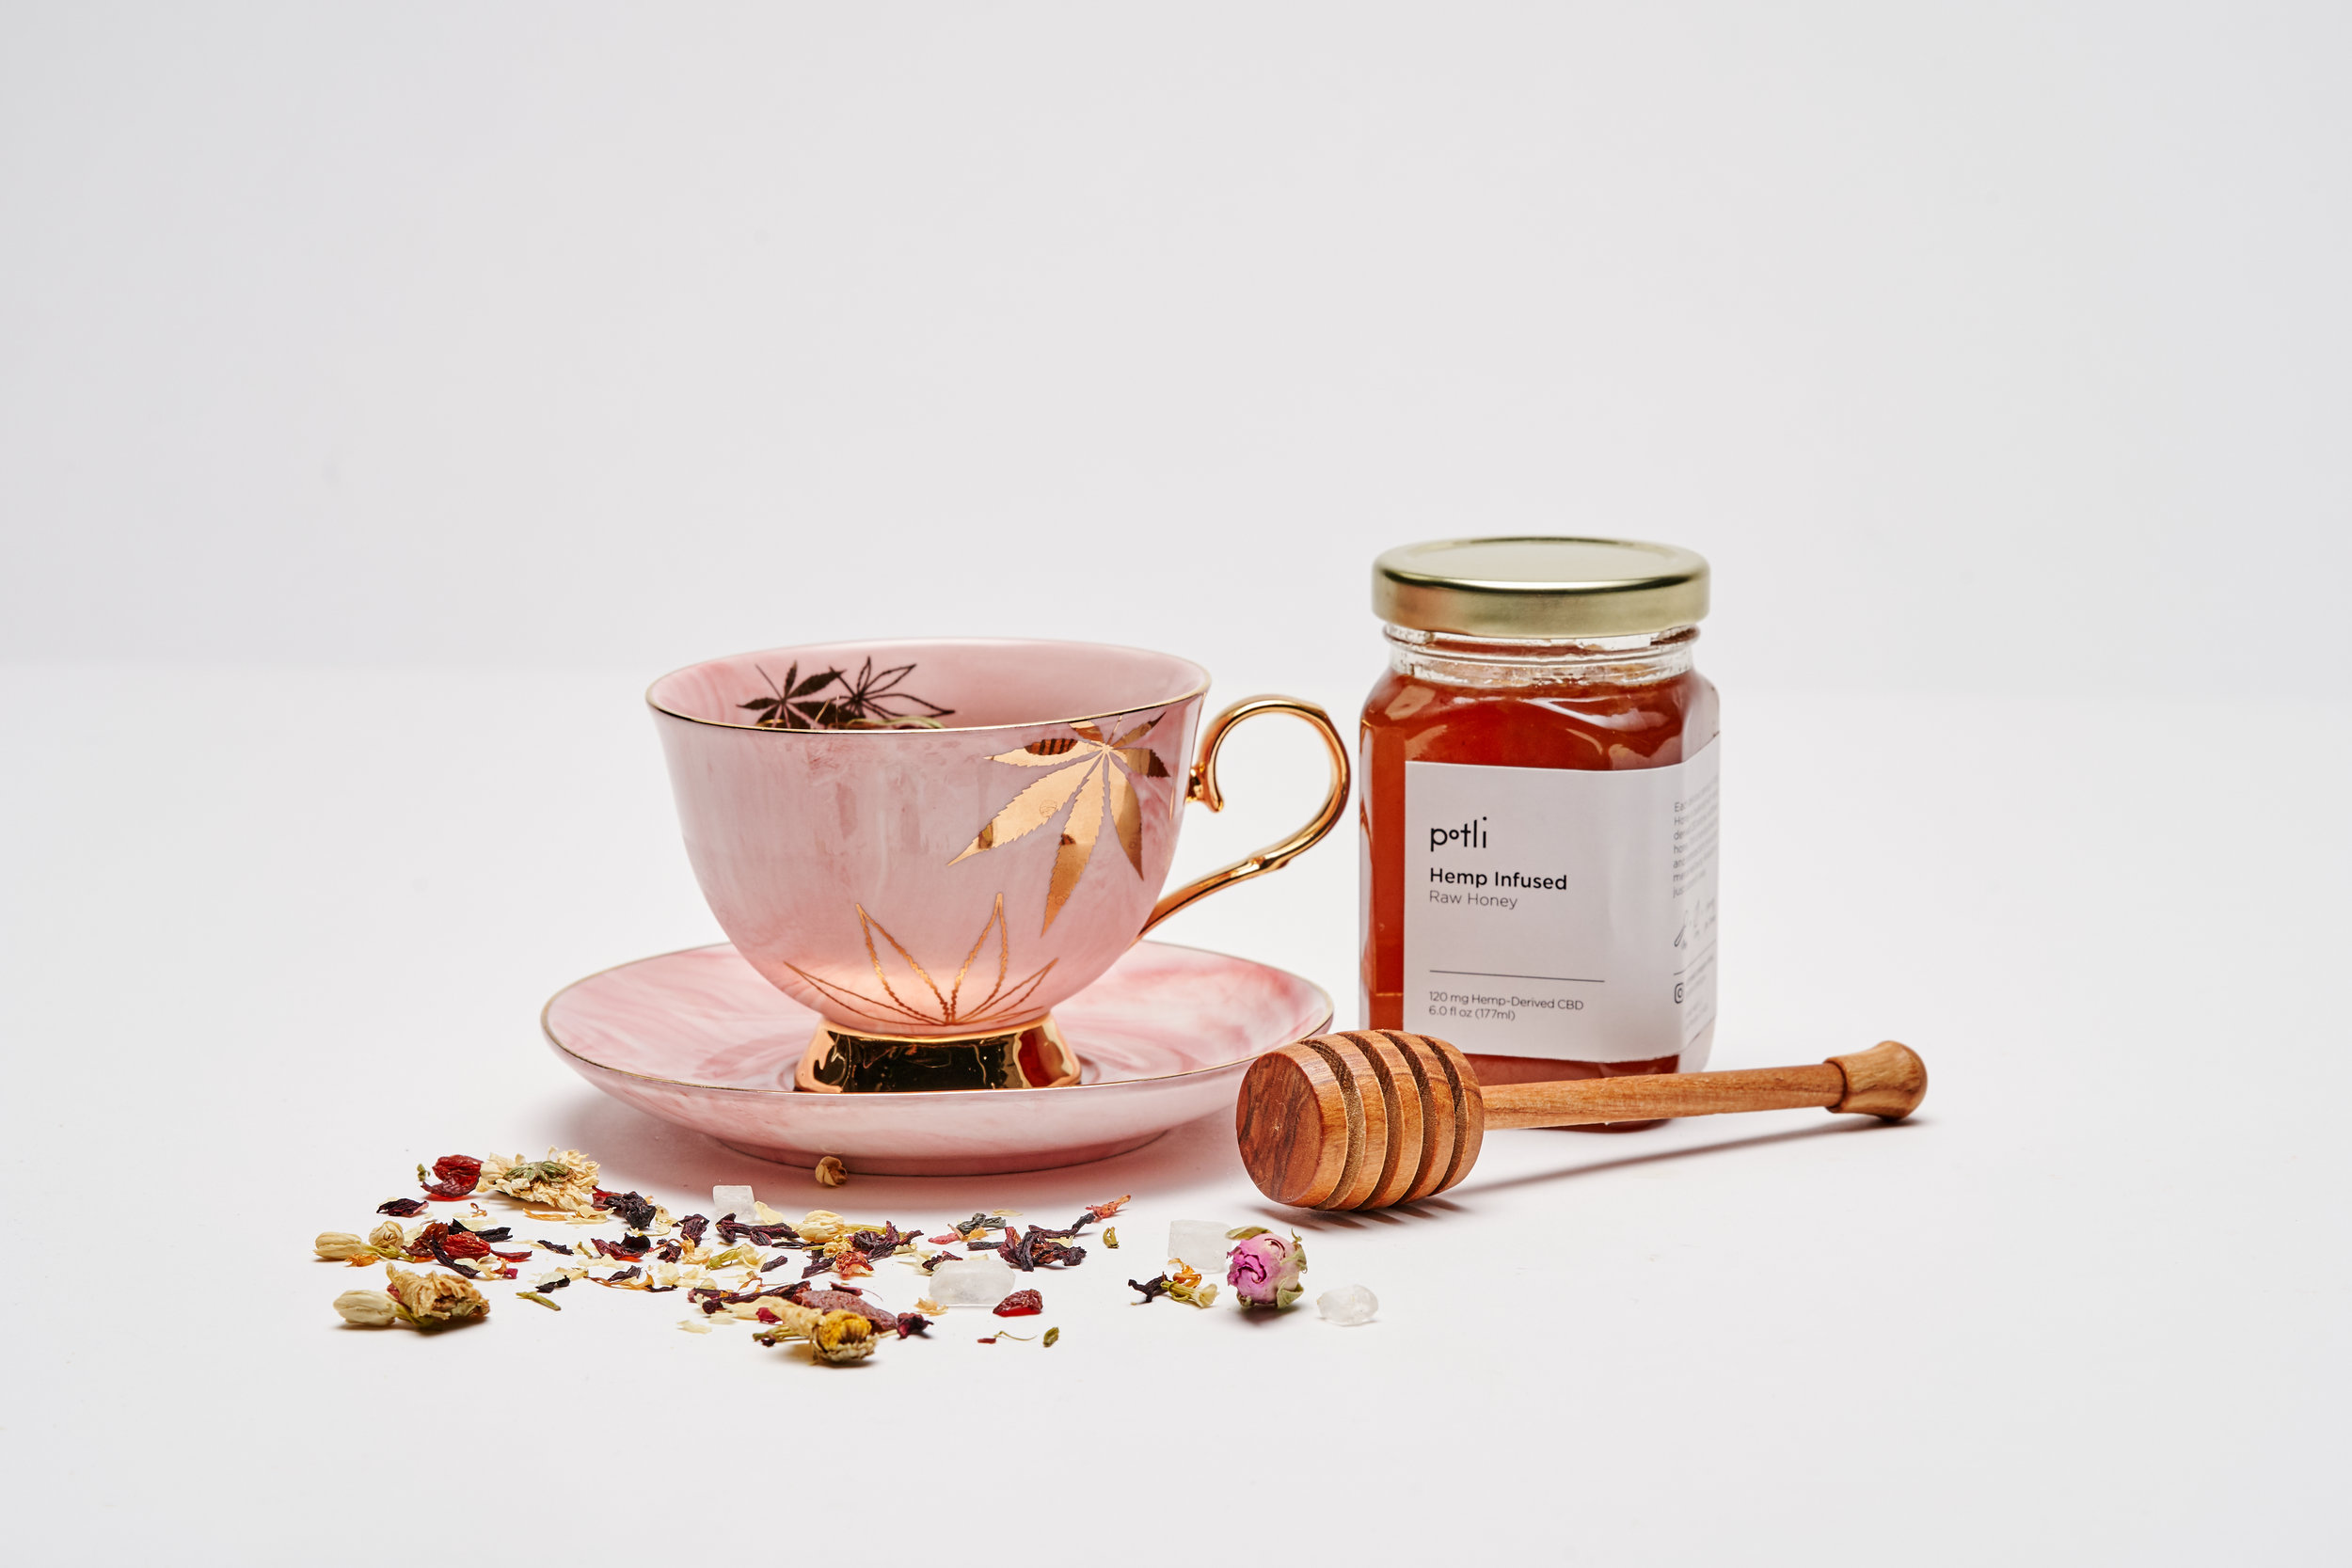 Morning cup of tea with Potli honey